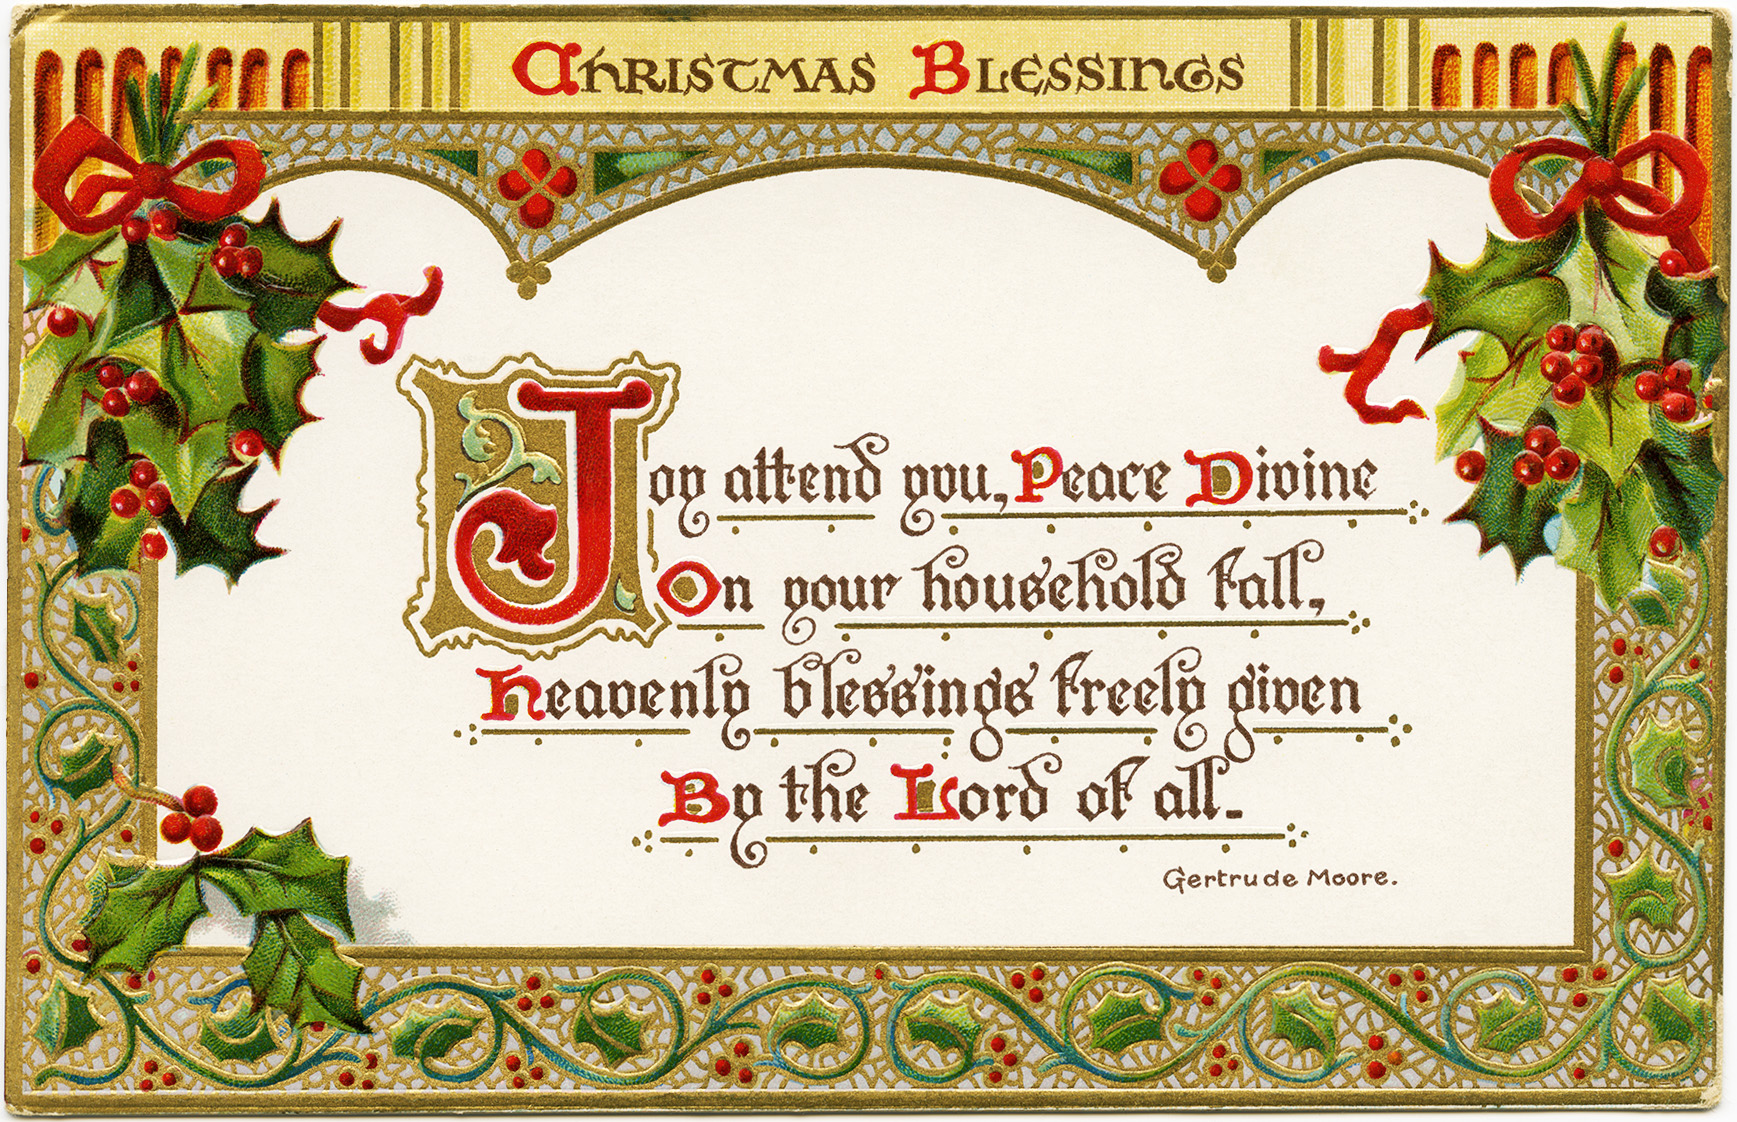 Christmas Blessings ~ Free Vintage Postcard Graphic | Old Design ...